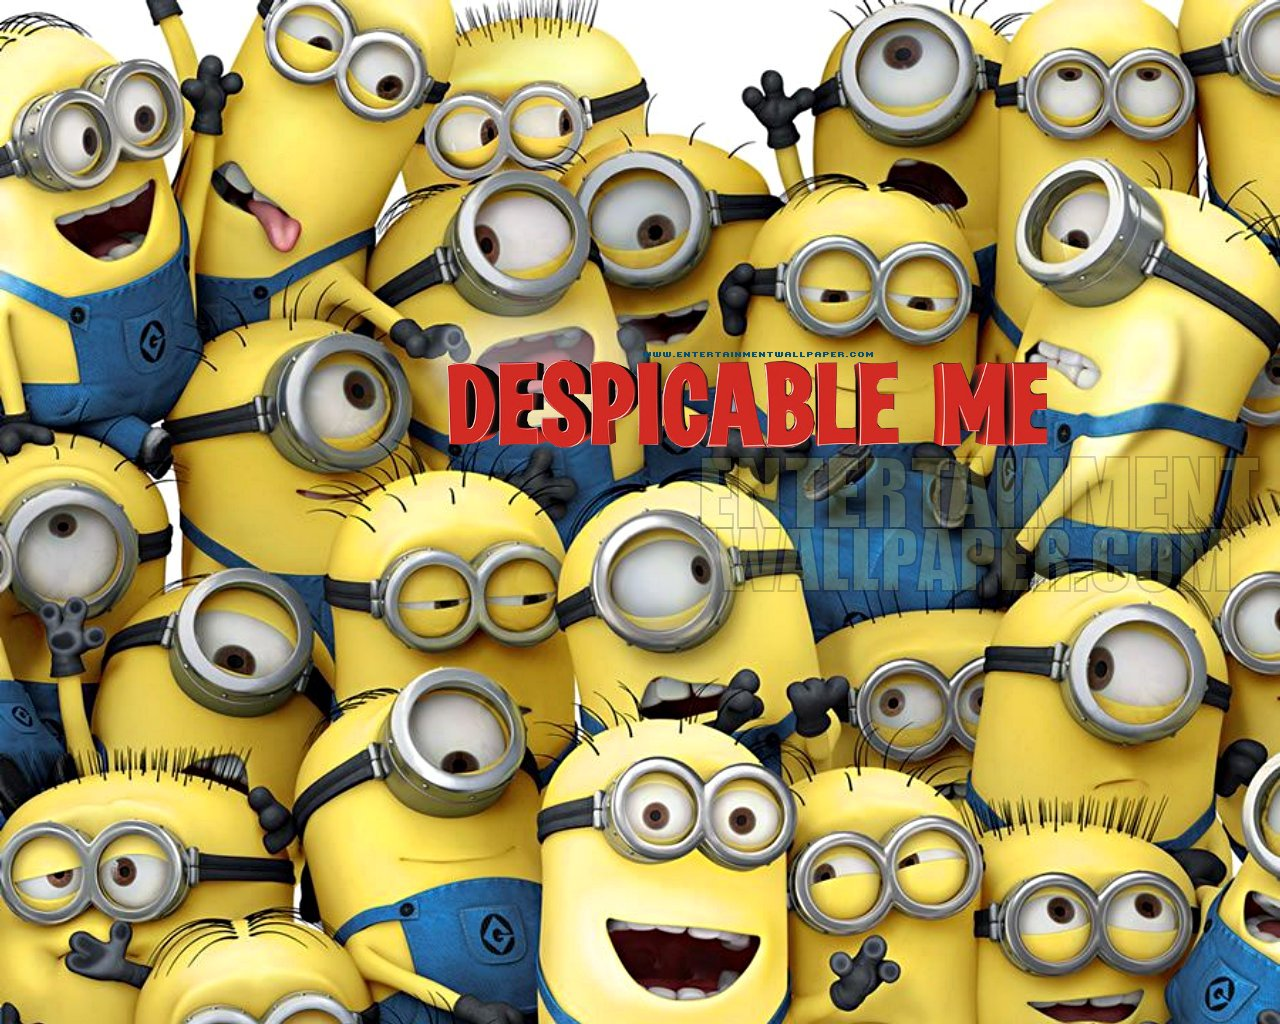 Despicable Me Minion Wallpapers Group  1280x1024